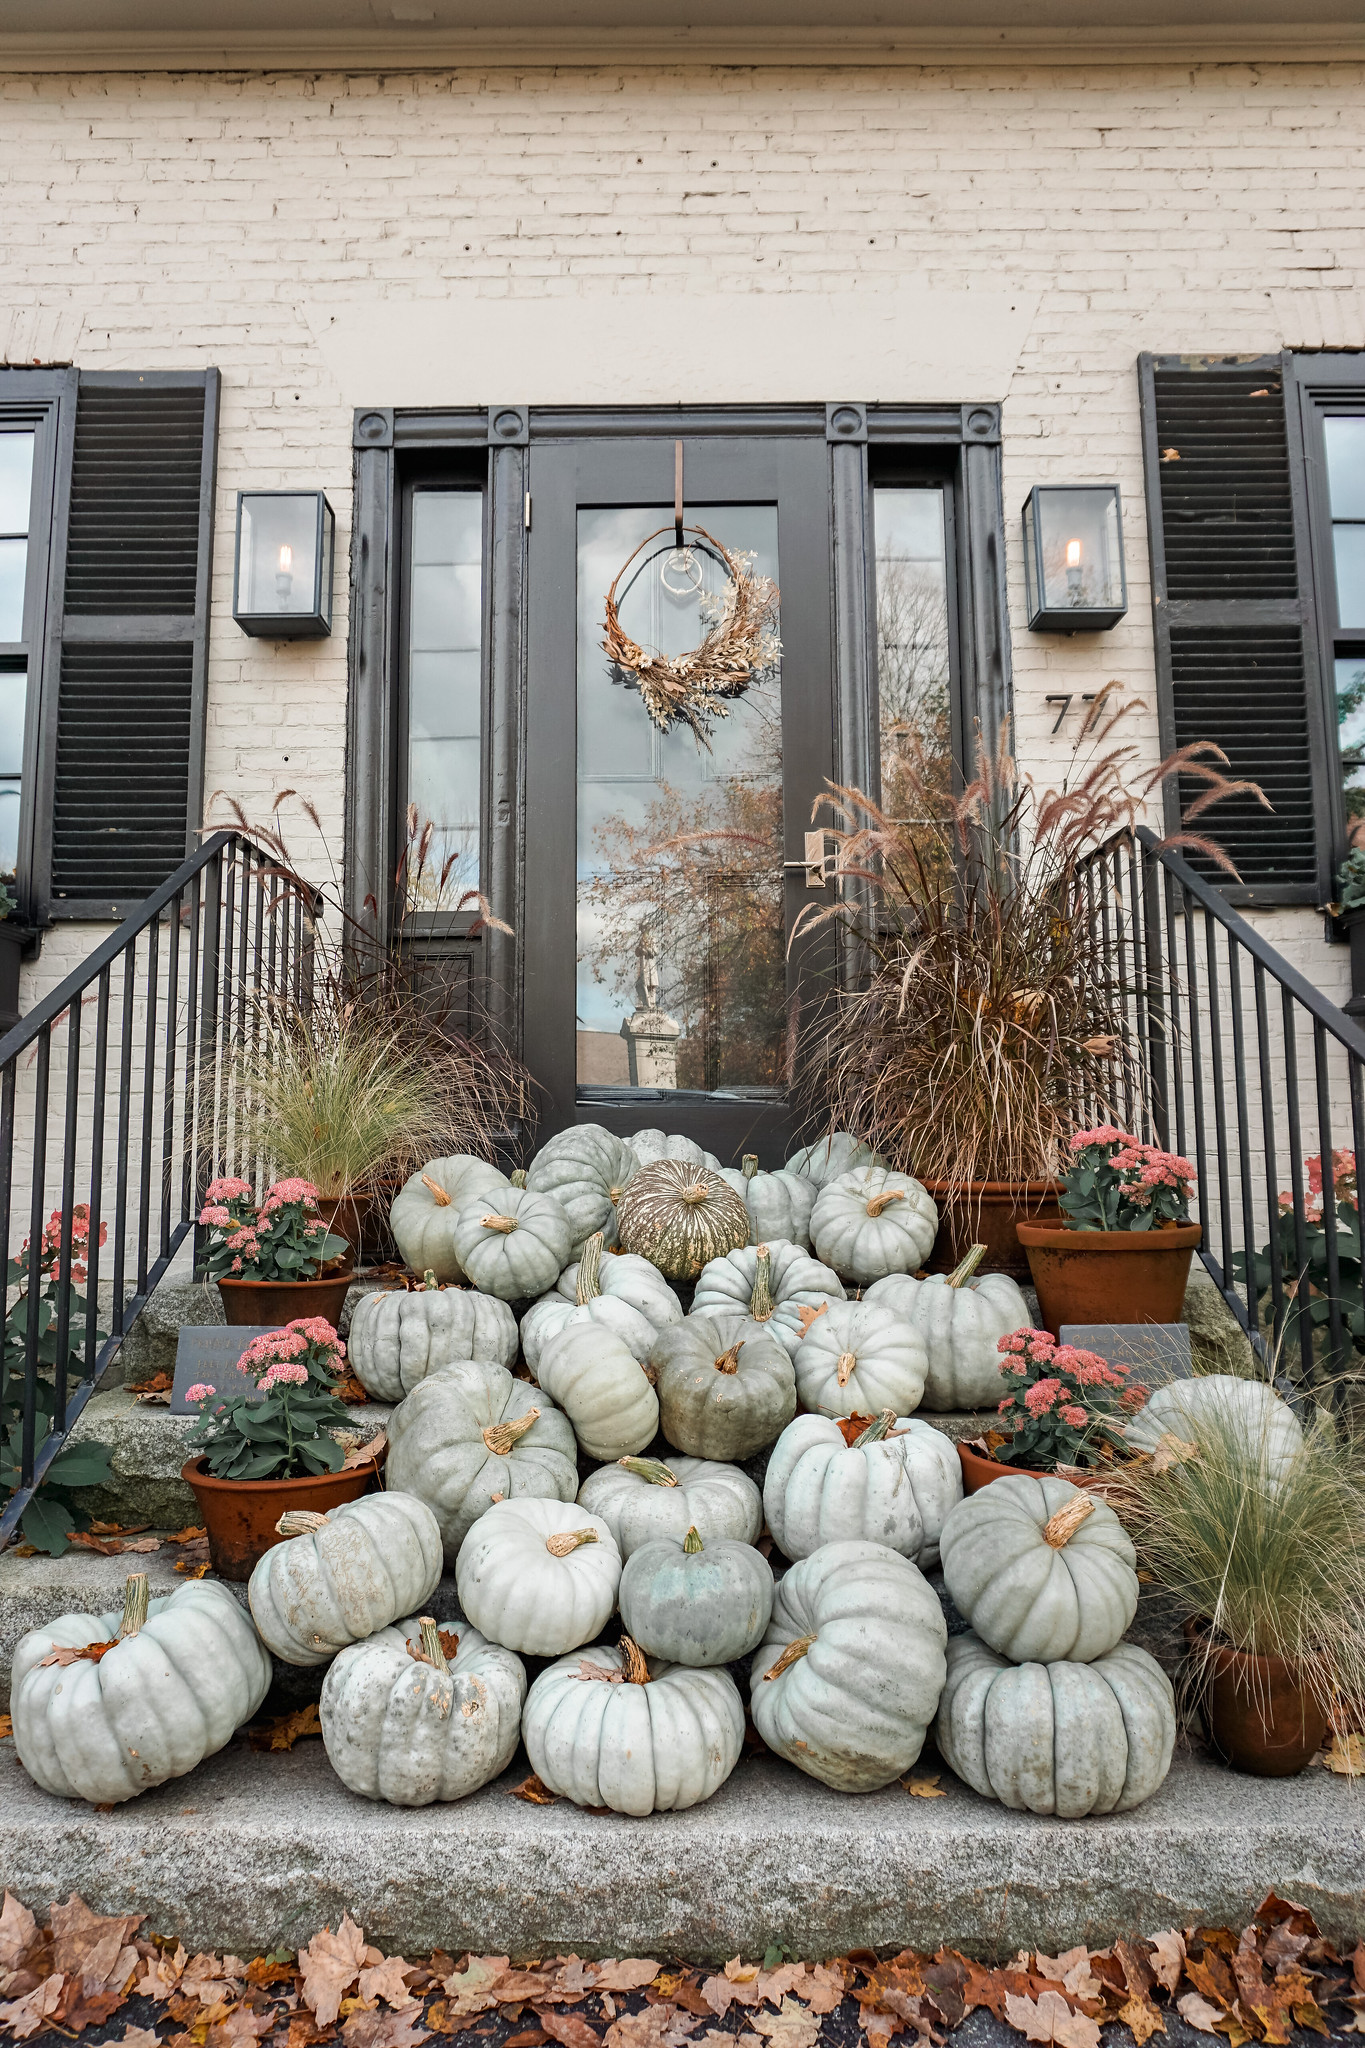 Pumpkin Display | Woodstock VT | My Complete Vermont Fall Travel Guide: What to See, Do & Eat | Ultimate Fall Guide to Vermont | 5 Day Vermont Road Trip | Fall Foliage Road Trip Guide